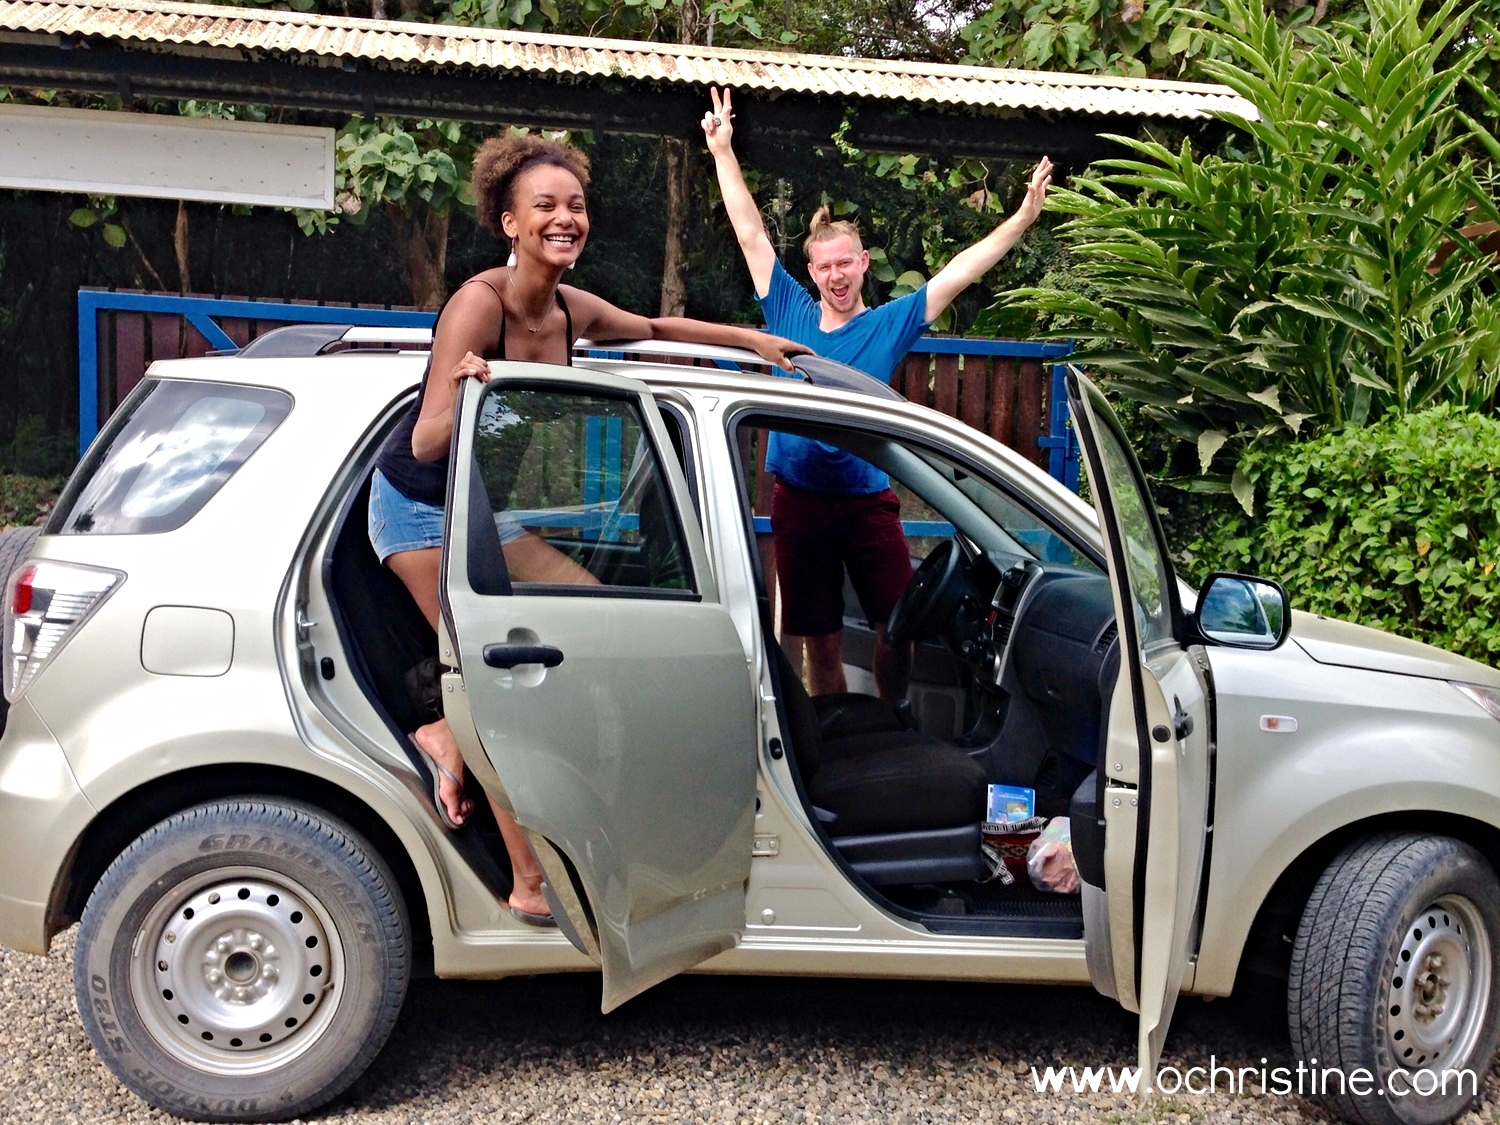 Alex and I rented a car and headed out to explore Dominical, Monteverde, and everything in between.  It started off with Alamo over charging me and then bringing a standard vehicle when I asked for automatic. Oh well, we survived.